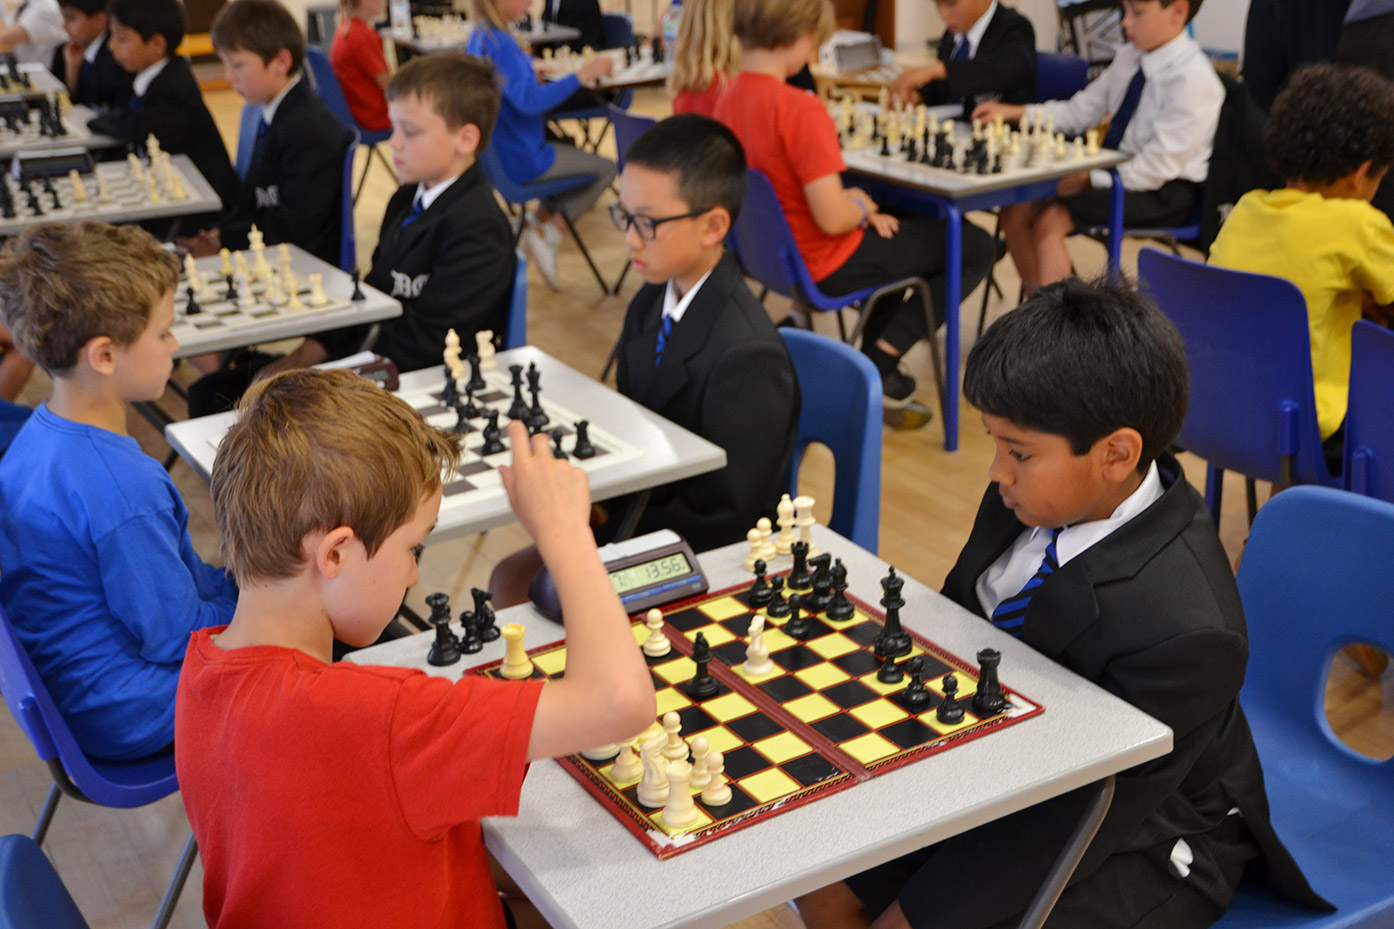 Dulwich College Junior School vs Rosendale Primary School chess competition